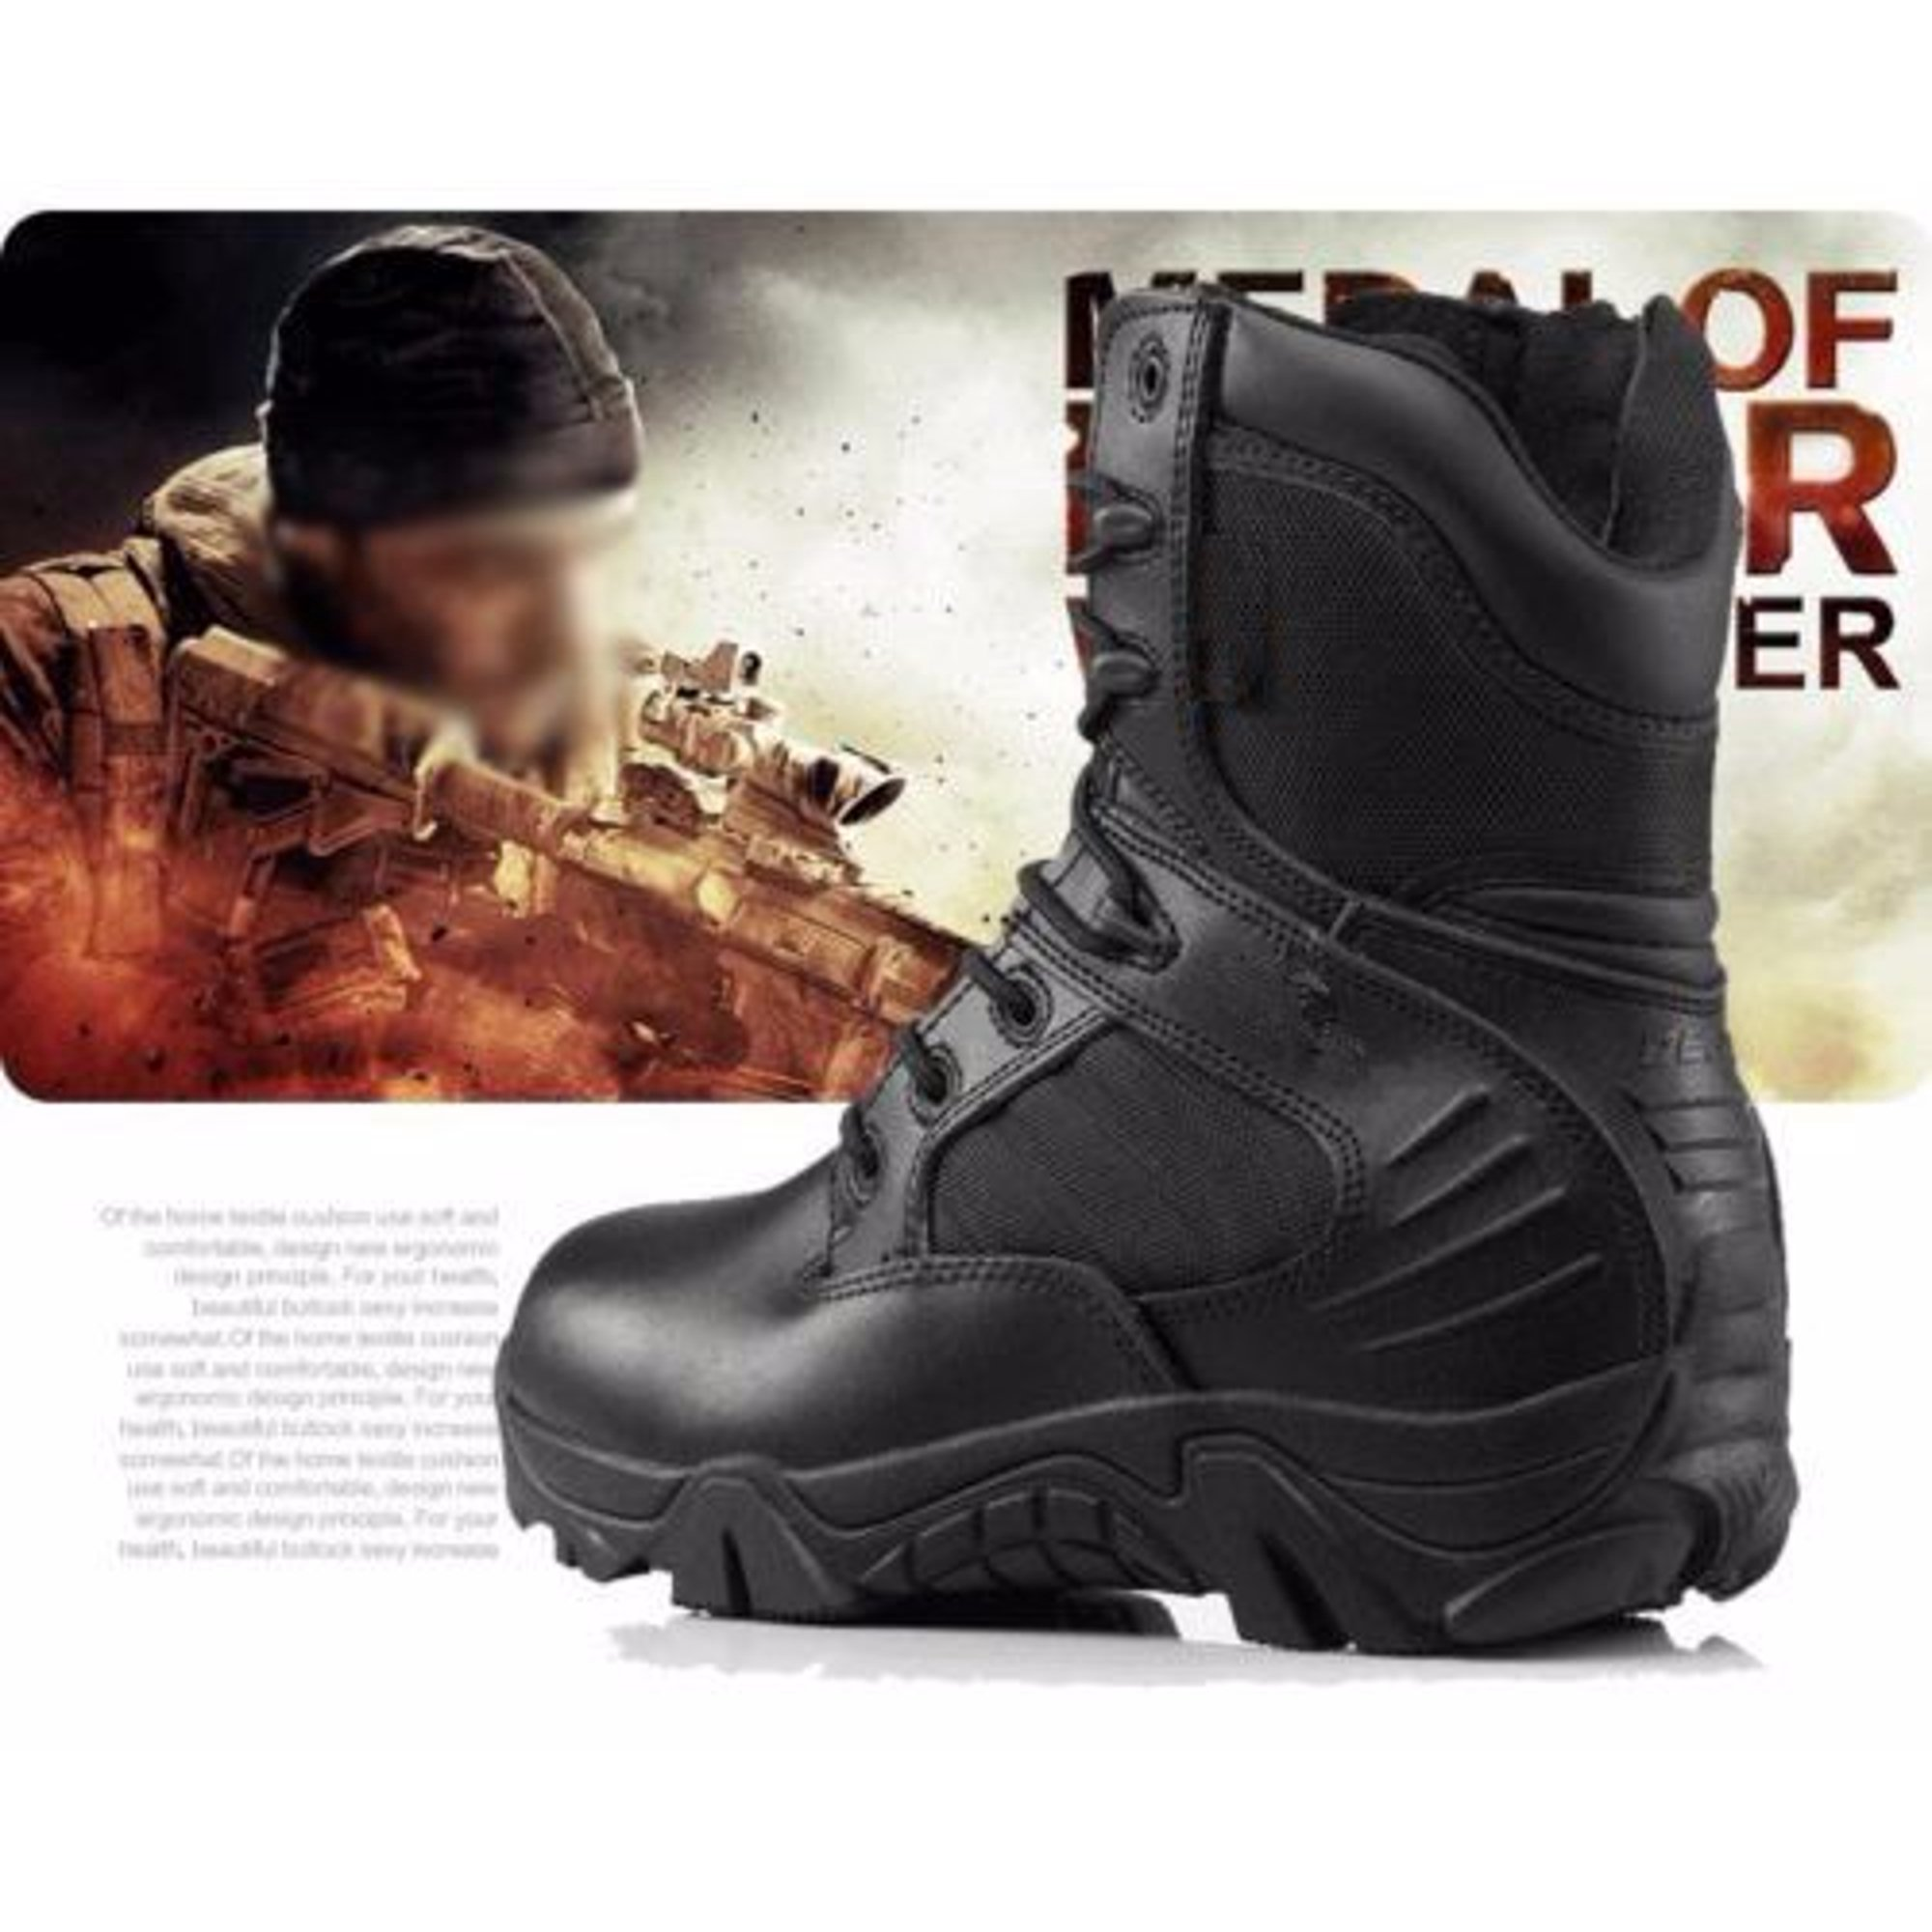 8aa1eaf384a Men's Army Tactical Comfort Desert Leather Combat Boots Military ...